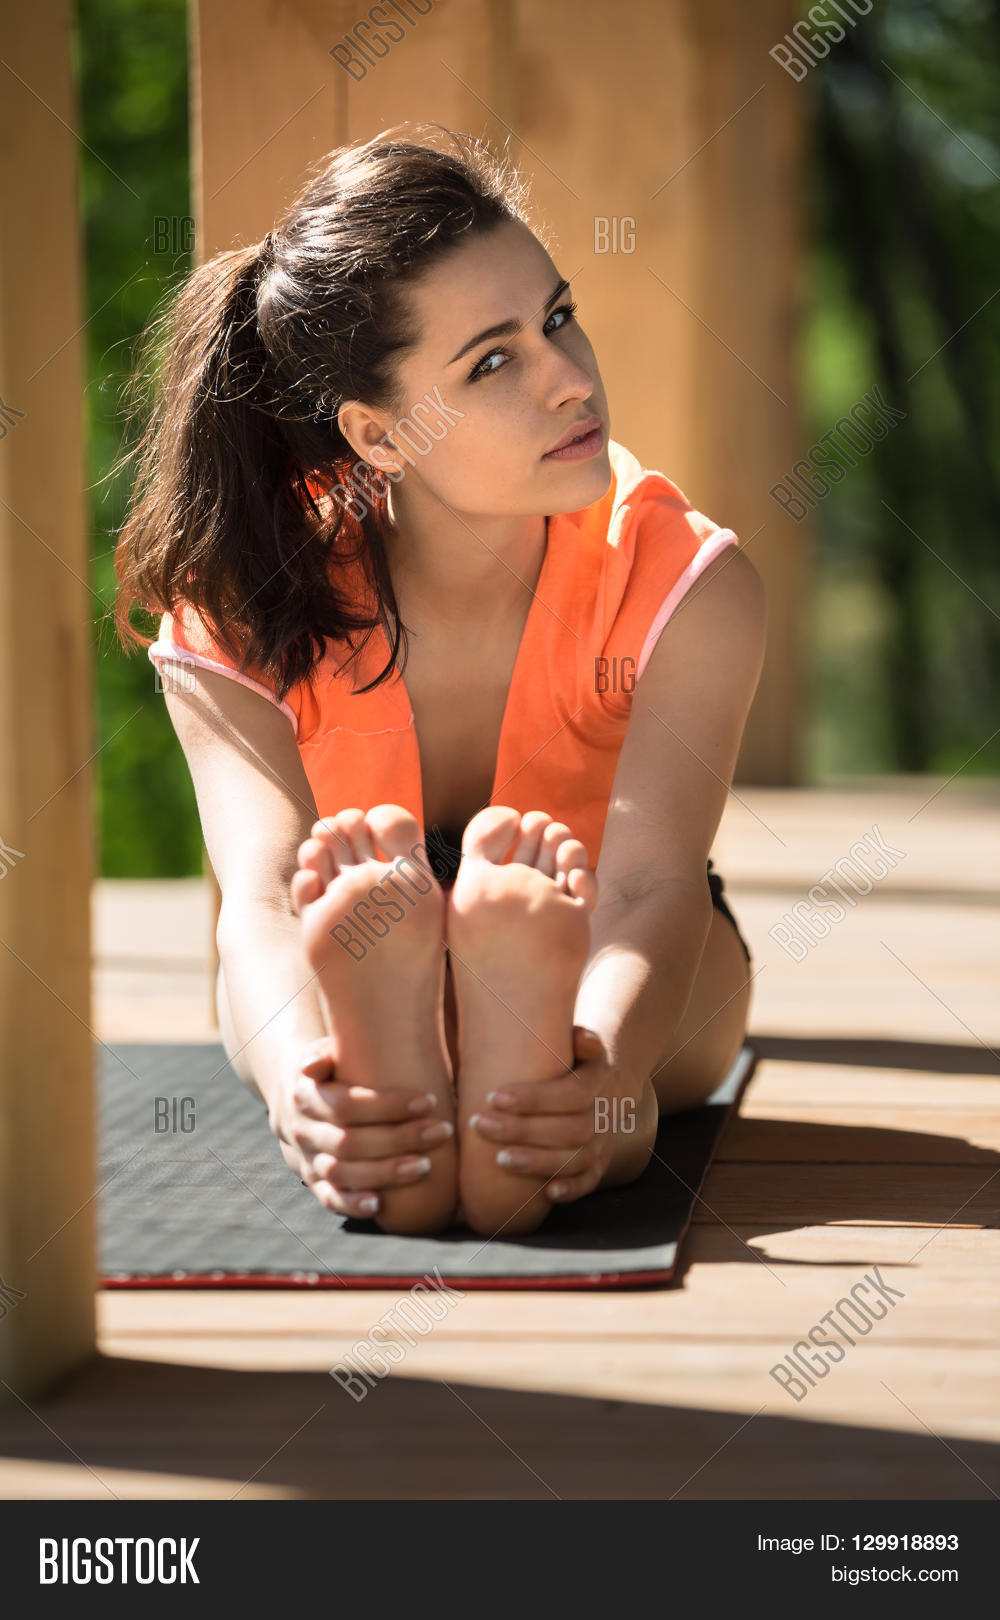 Barefoot Girl Engaged Yoga On Image Amp Photo Bigstock